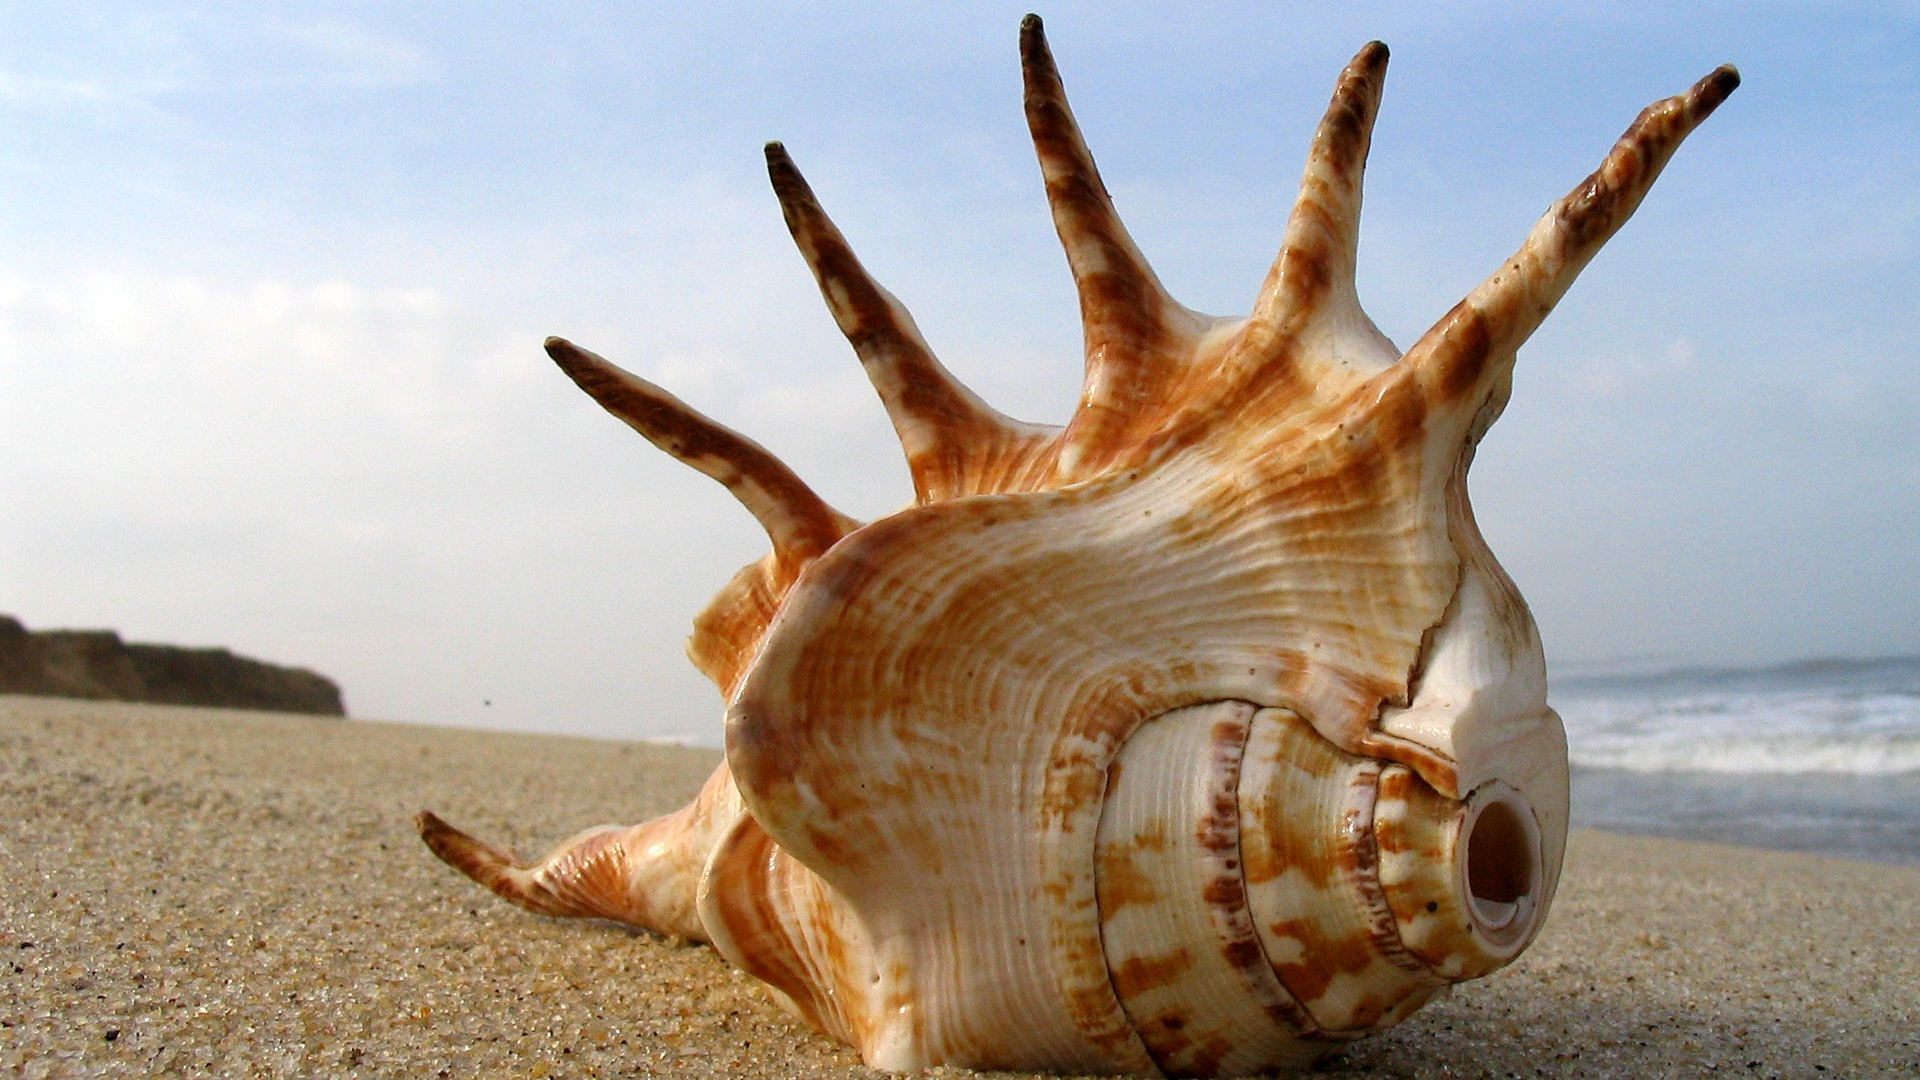 Cool Shell